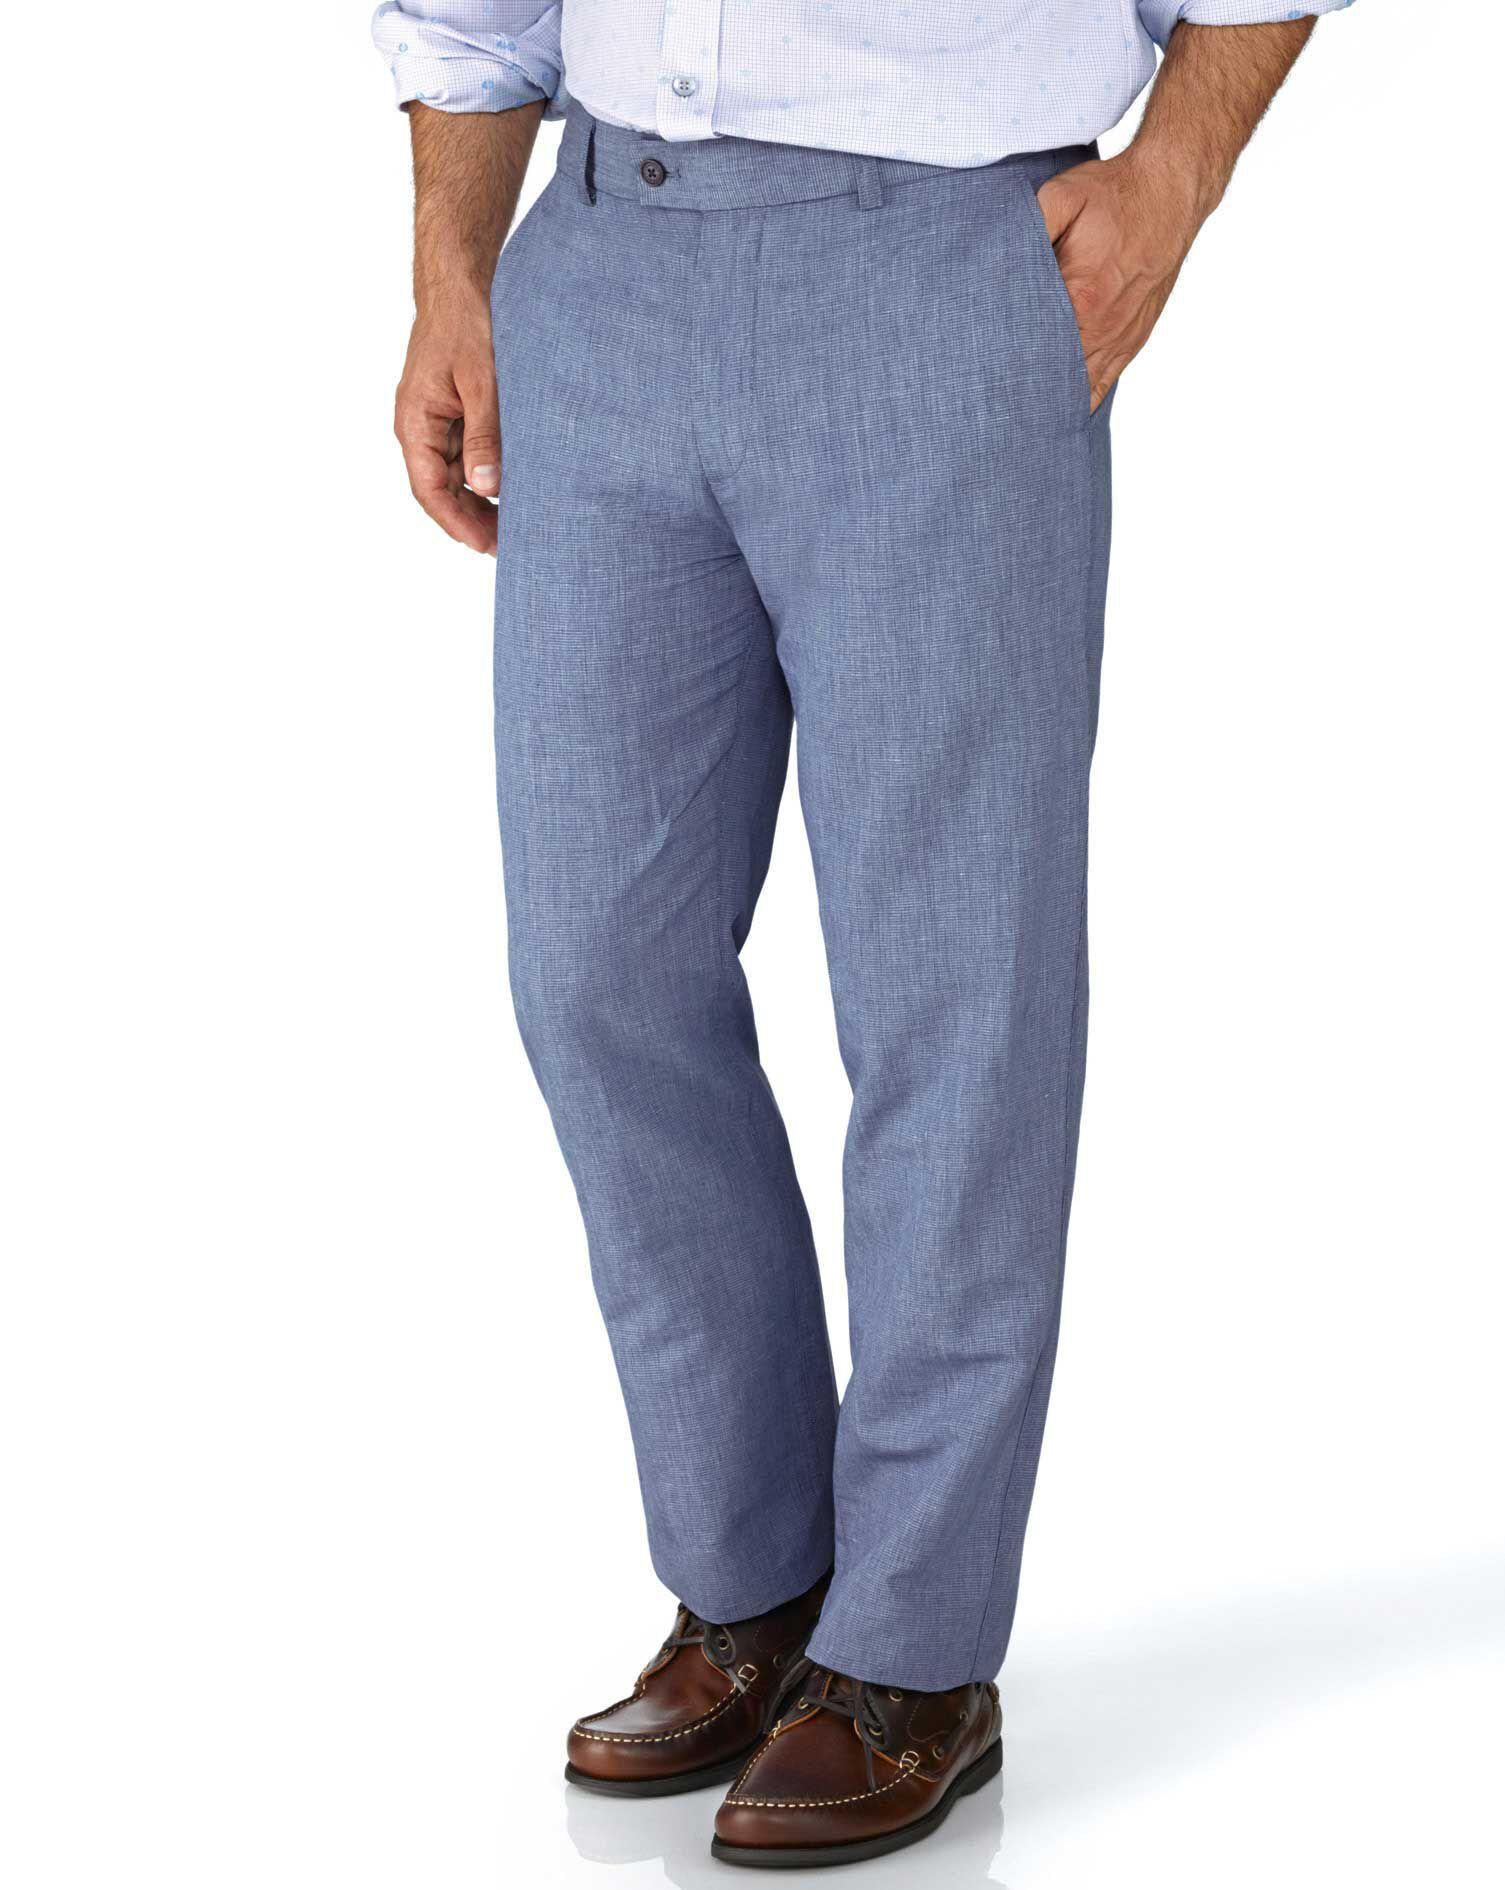 Blue Slim Fit Cotton Linen Trousers Size W30 L32 by Charles Tyrwhitt